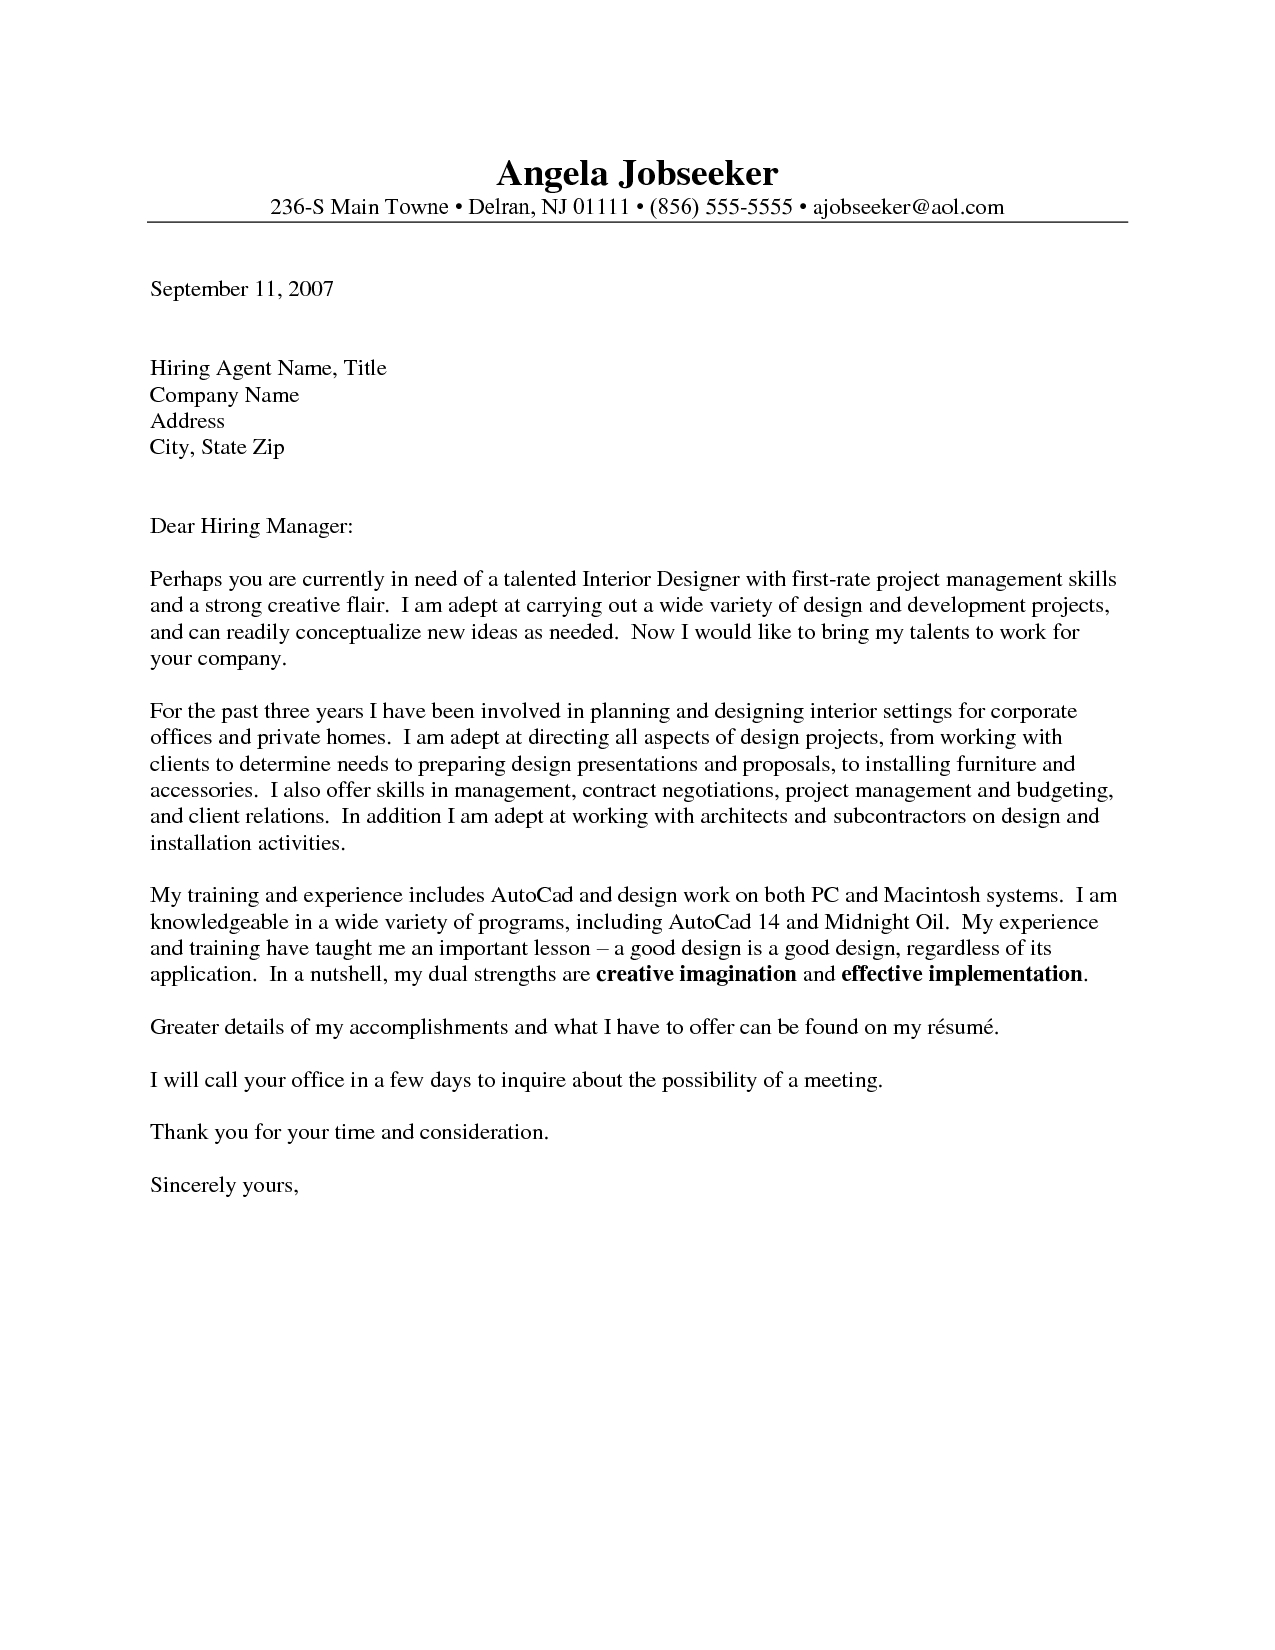 Business Presentation Letter Template - Outstanding Cover Letter Examples